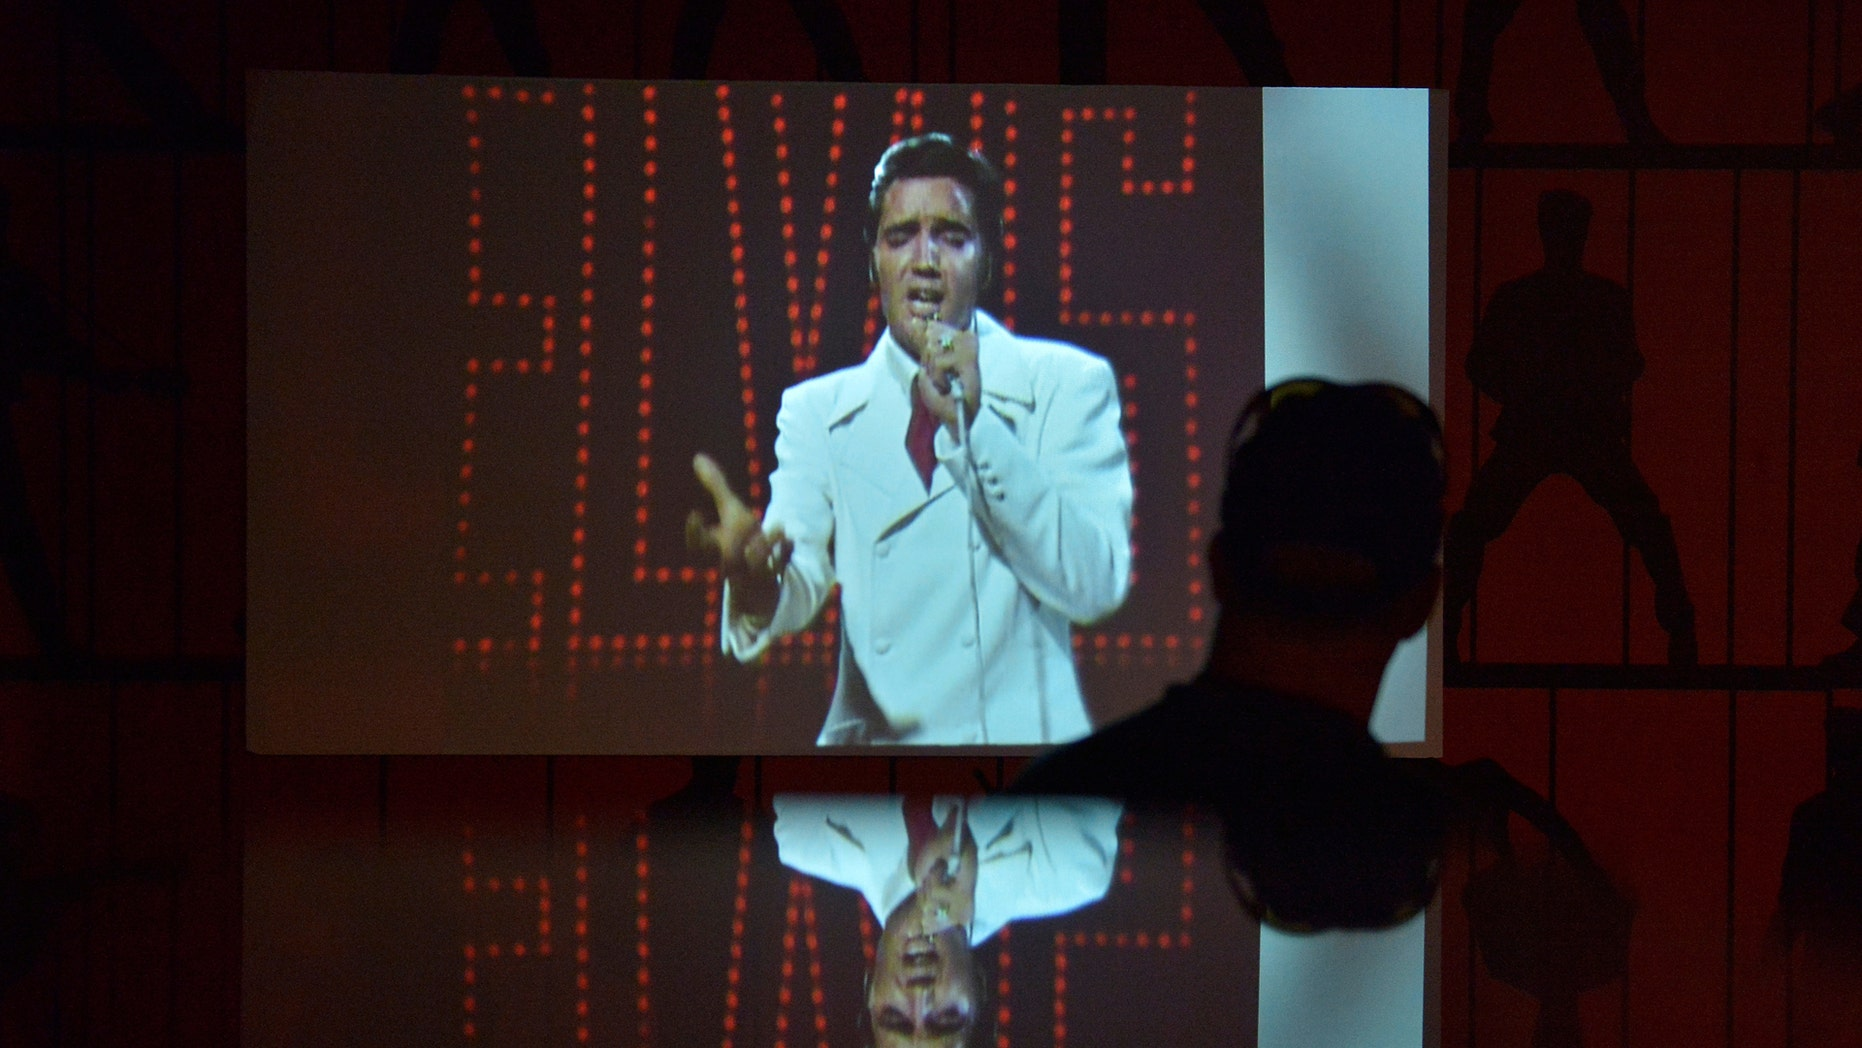 """File photo - A man watches a video of Elvis Presley performing during the grand opening of """"Elvis Presley's Memphis"""", a $45 million, state-of-the-art entertainment and museum complex, in Memphis, Tennessee, U.S., March 2, 2017. (REUTERS/Brandon Dill)"""